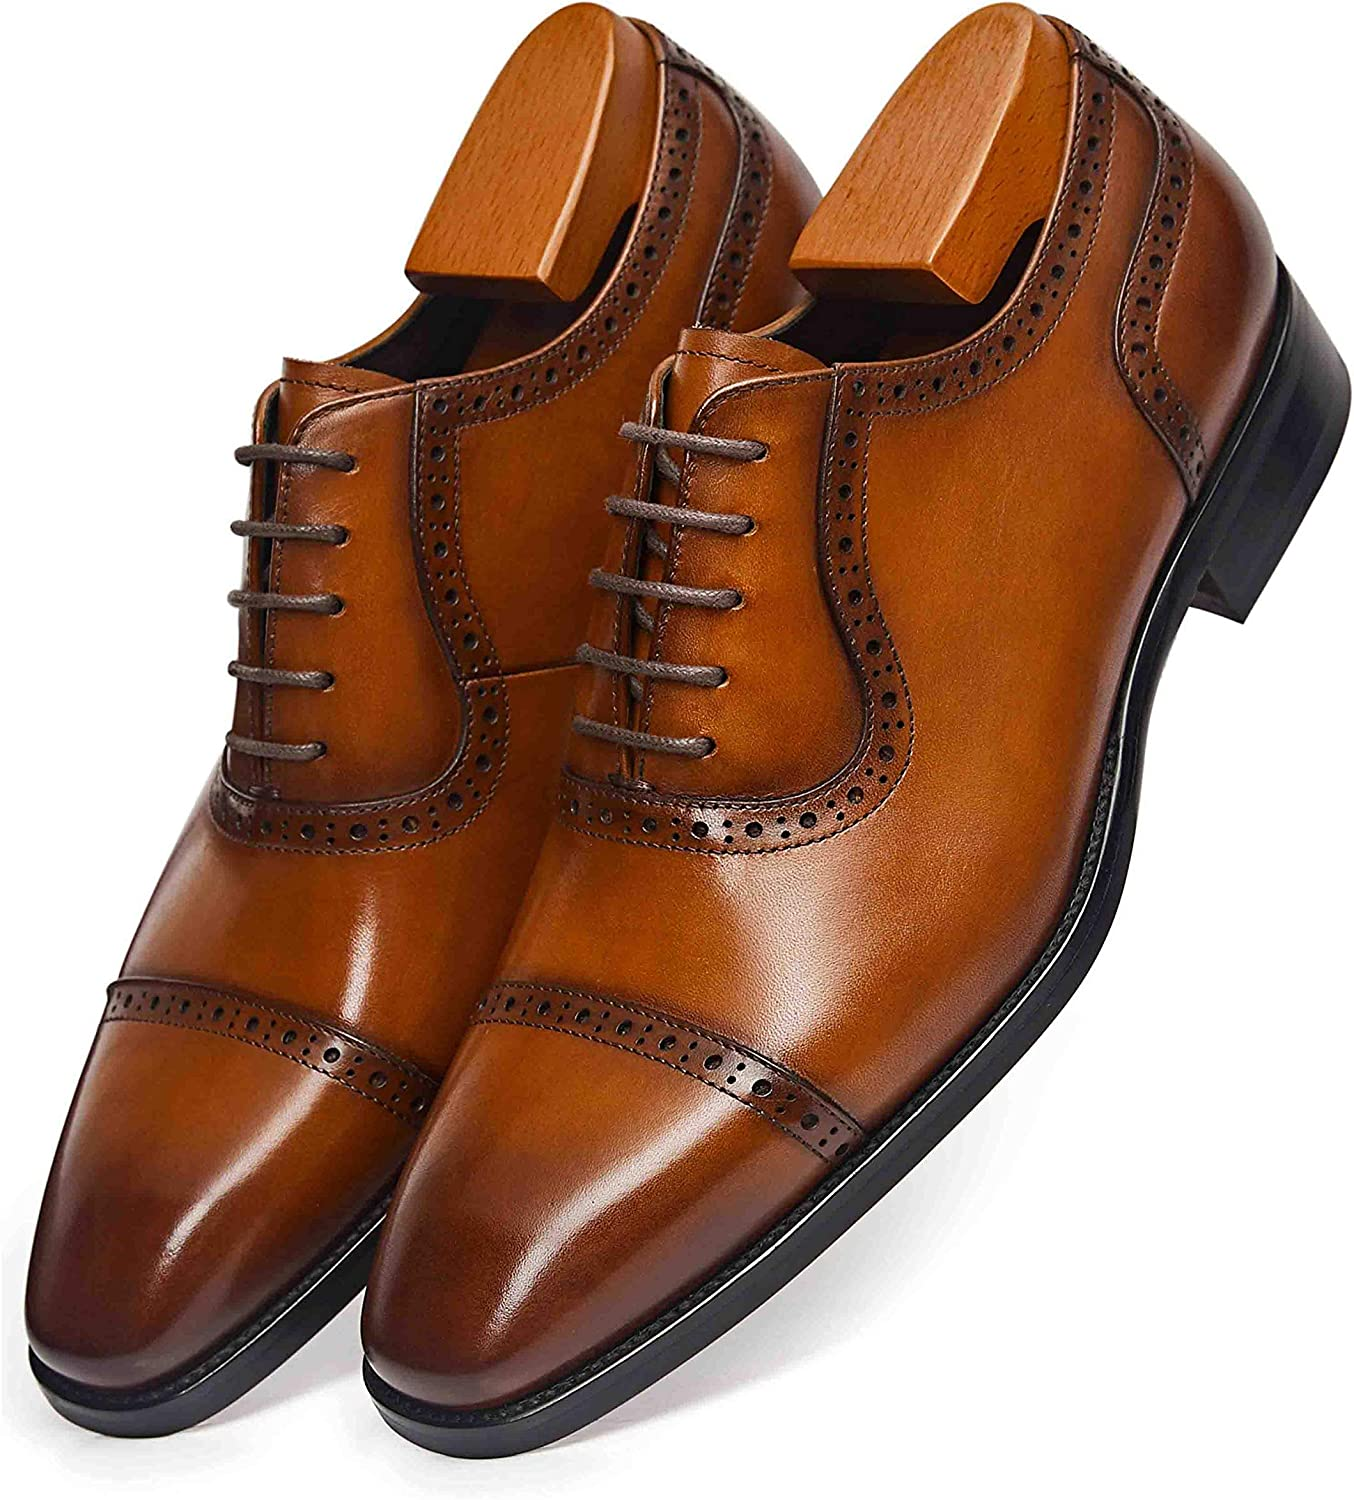 Details about  /Mens Real Leather Business Shoes Oxfords Slip on Square Toe Loafers Formal New L